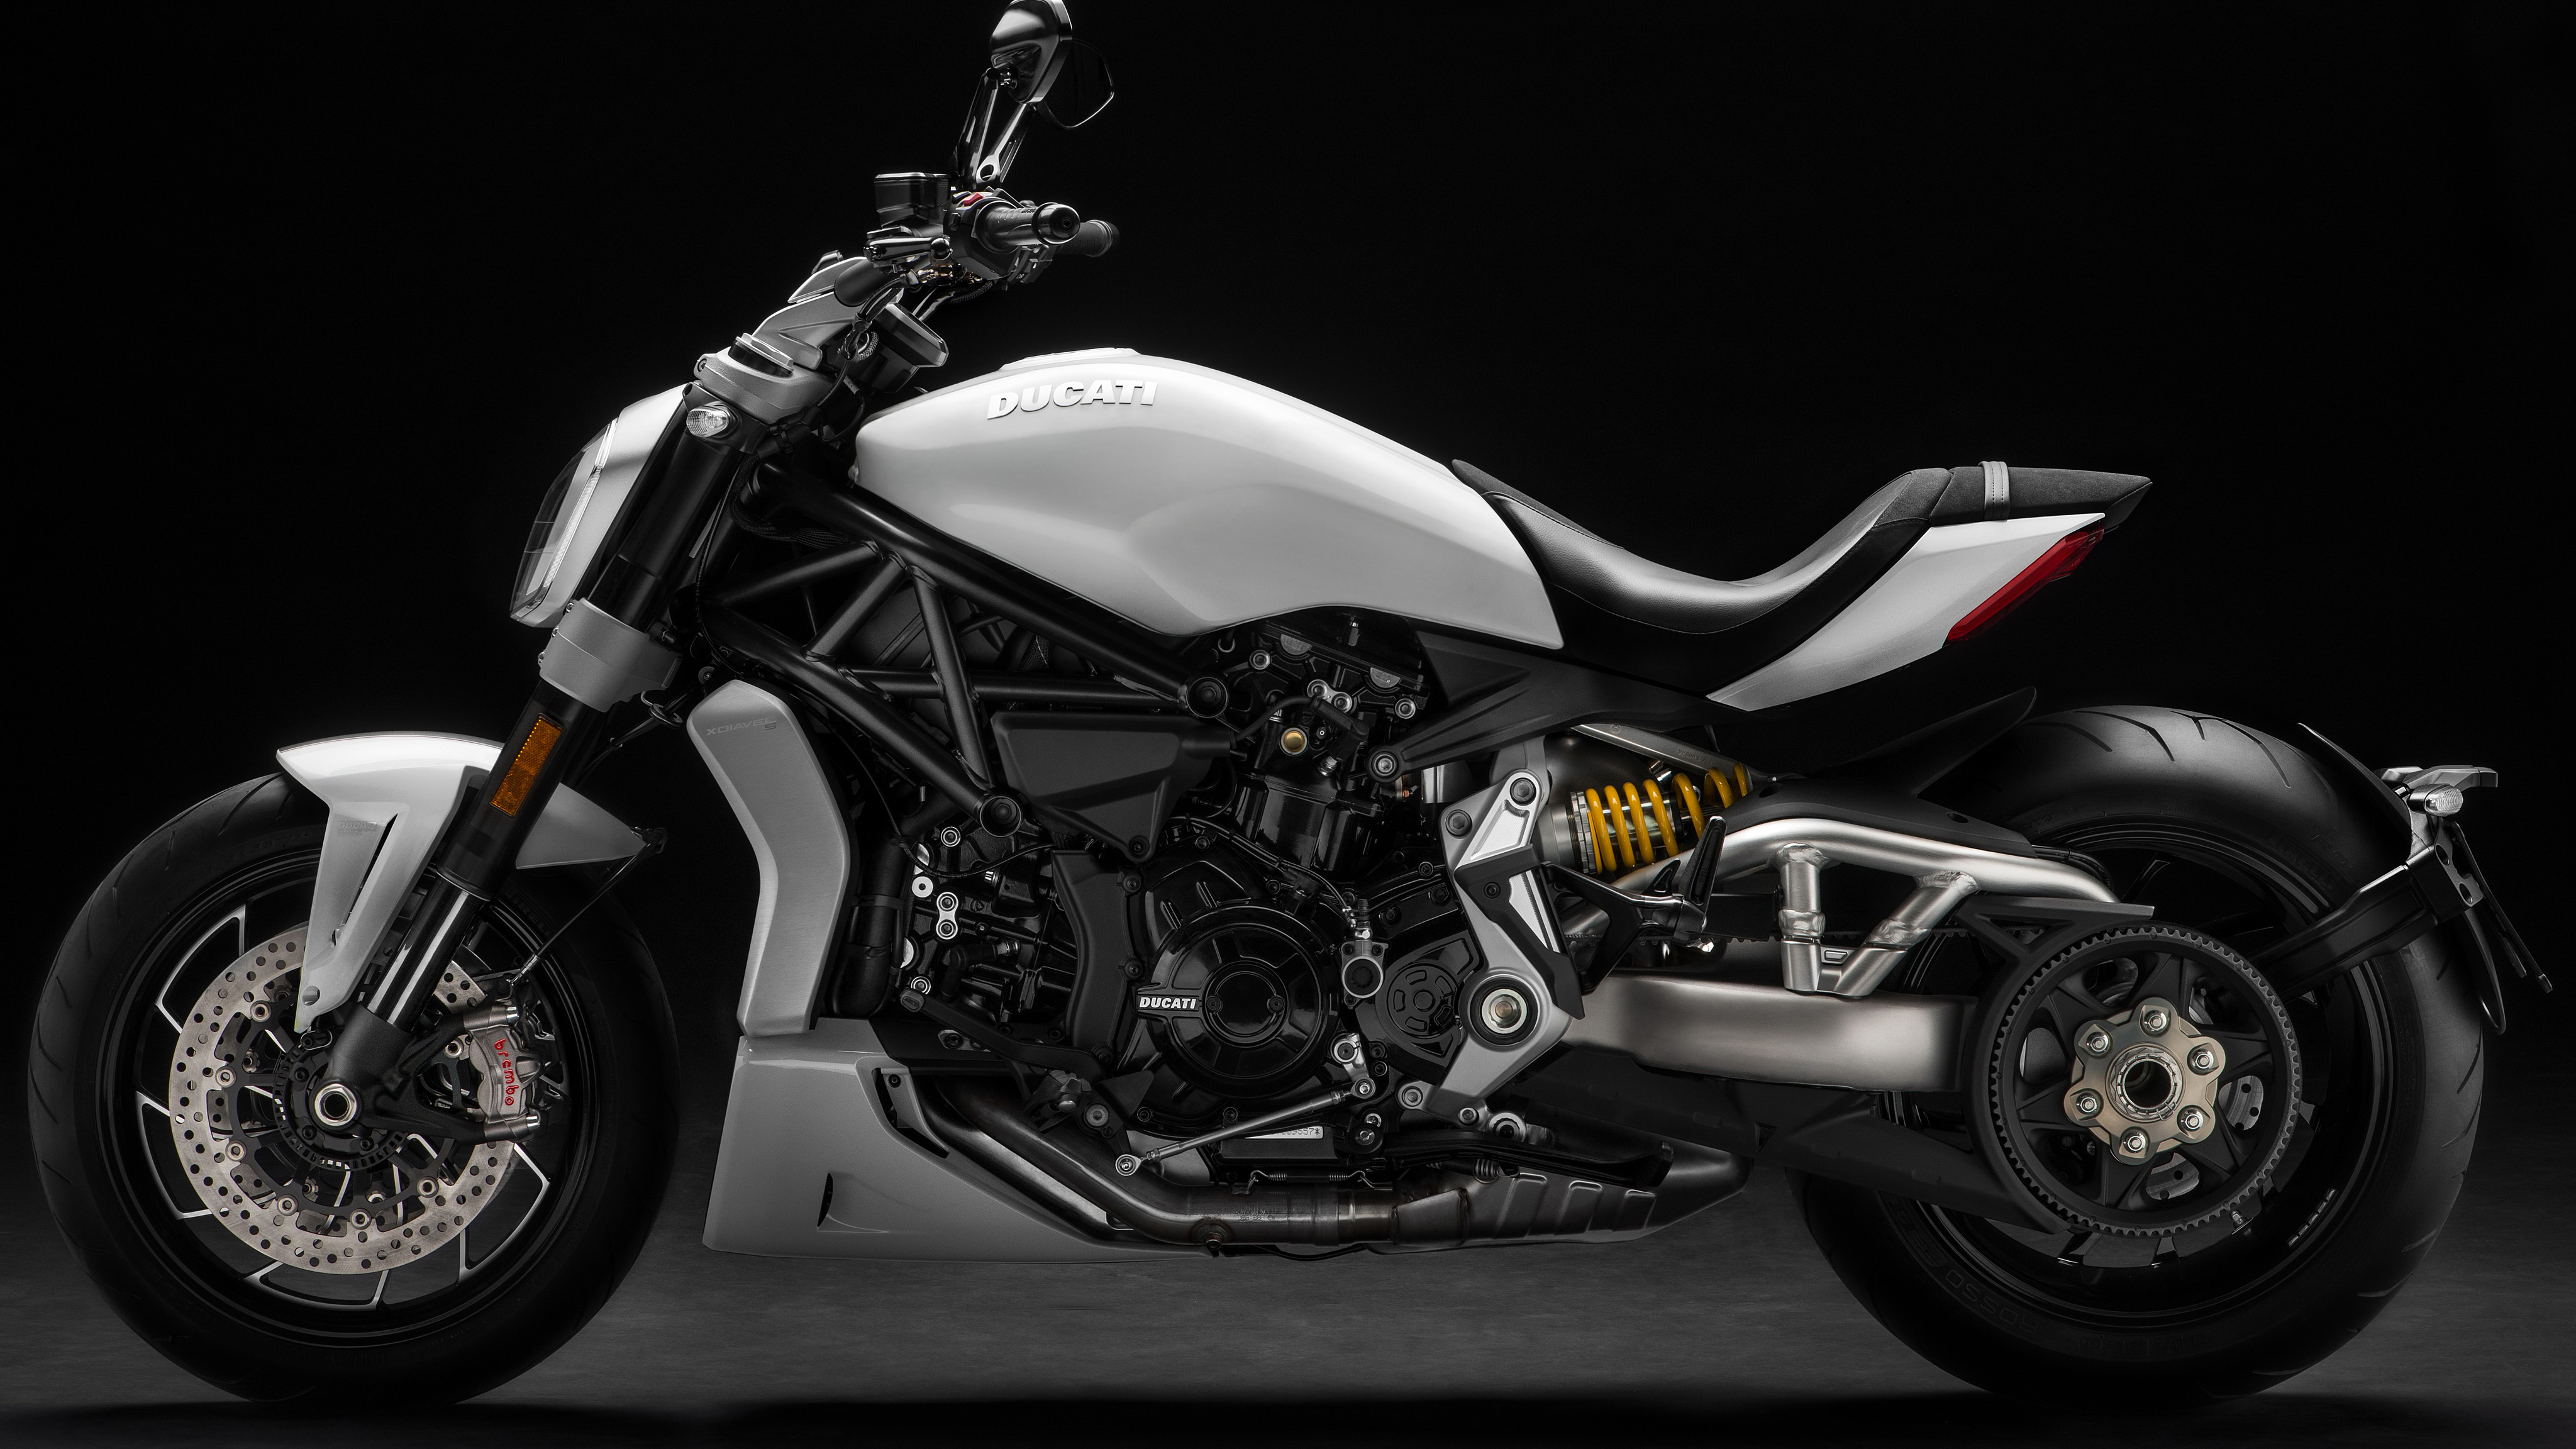 2018 Ducati XDiavel S Wallpapers